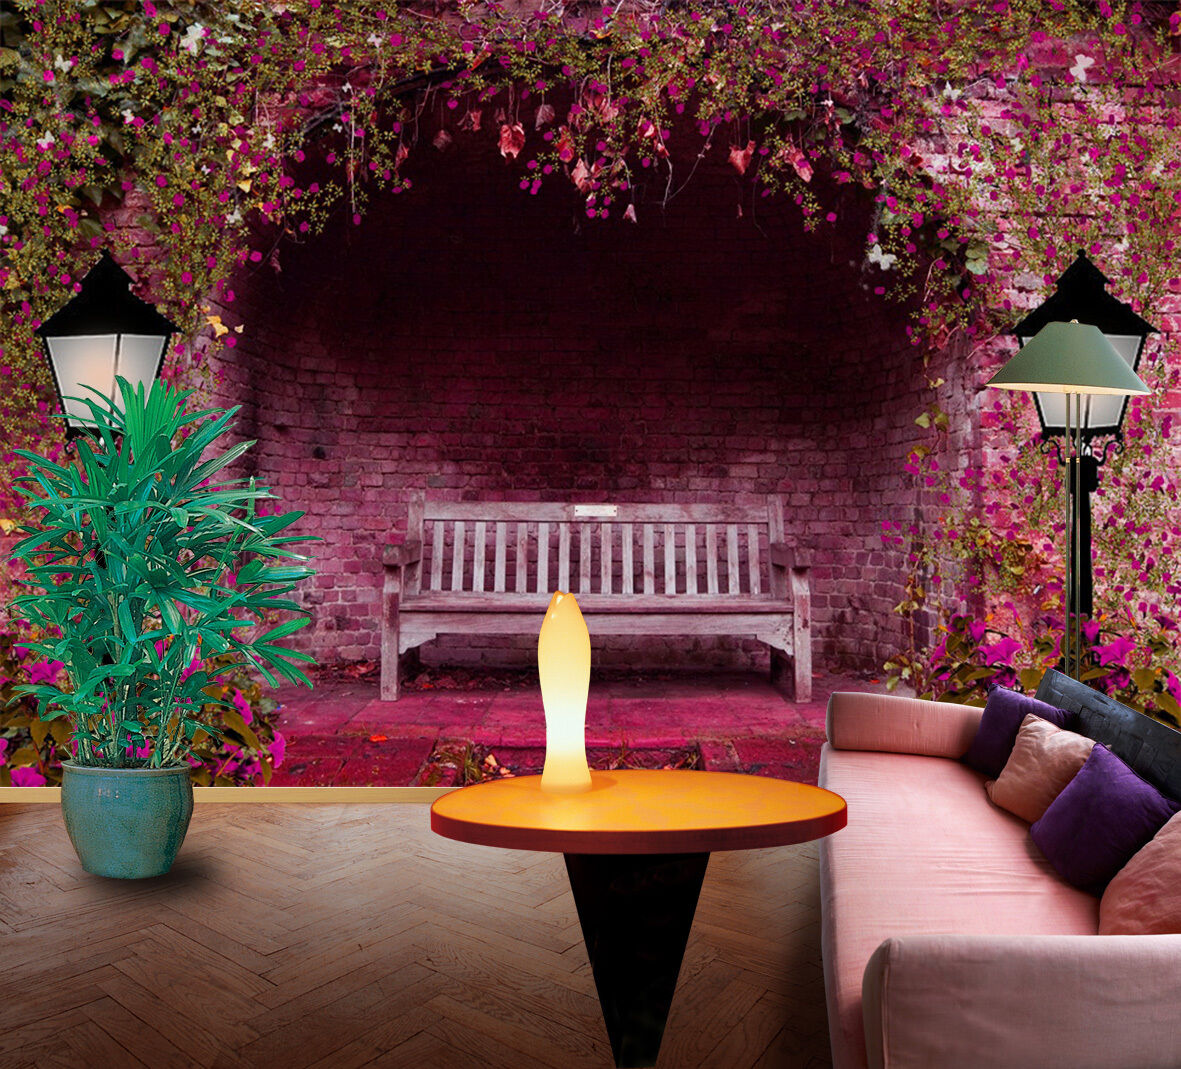 3D Flowers, benches 47 Wall Paper Print Wall Decal Deco Indoor Wall Murals